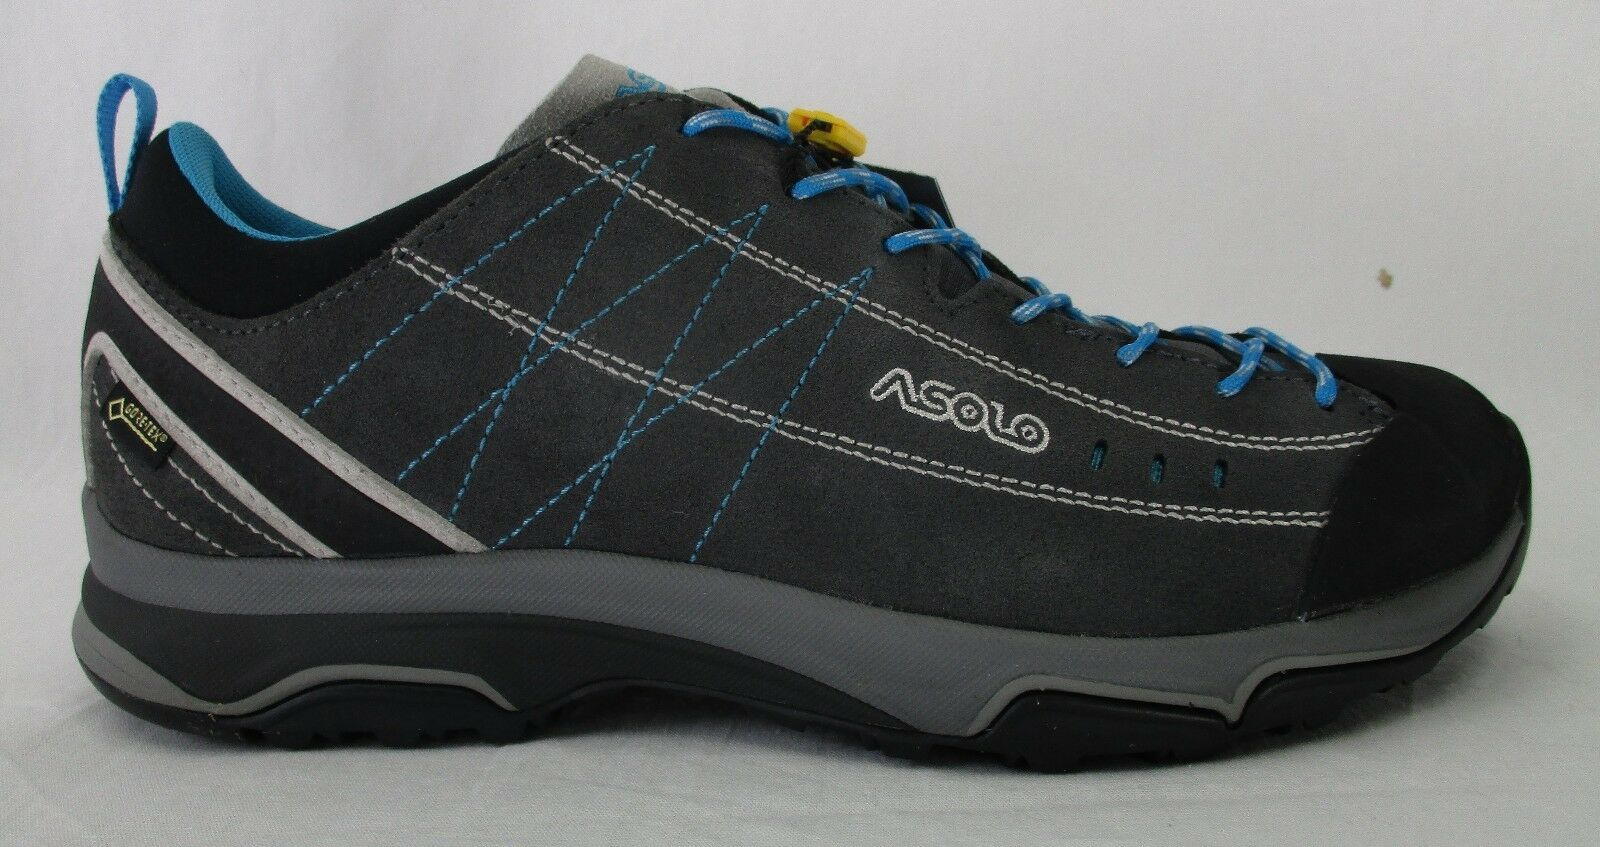 Asolo Womens Nucleon GV Hiking shoes A40013 Graphite Silver Cayan bluee Size 8